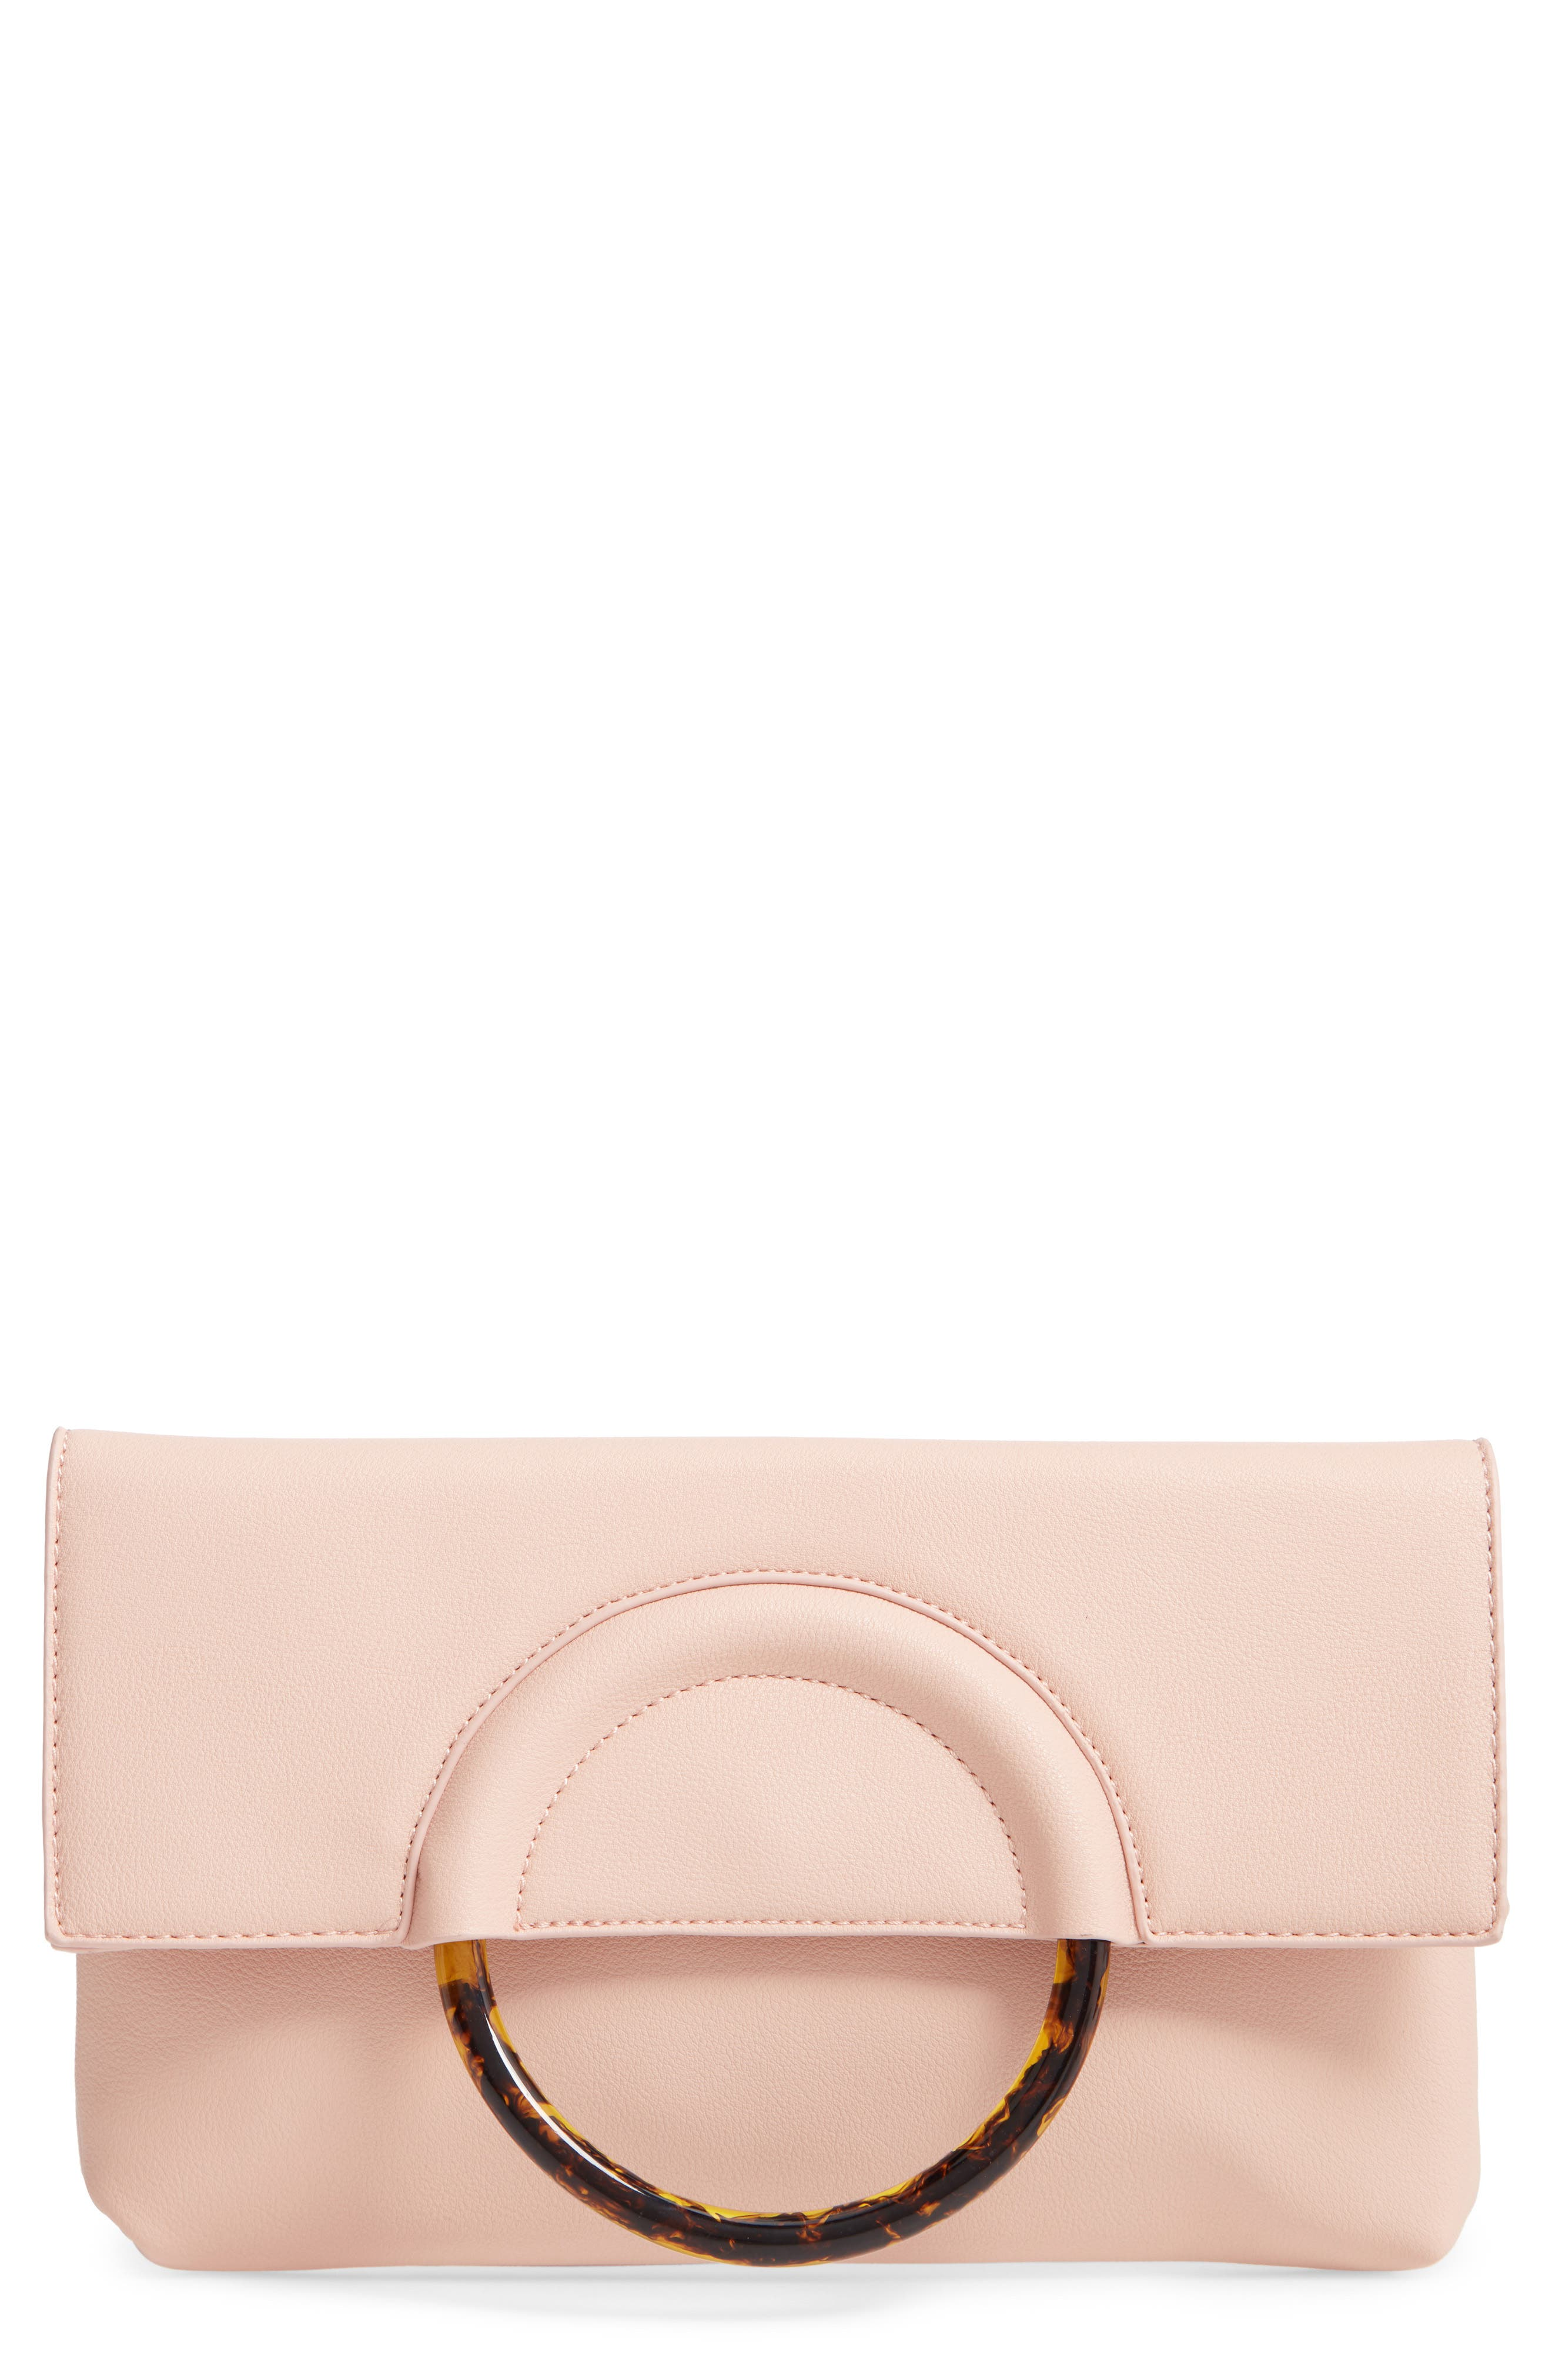 Resin Handle Clutch,                             Main thumbnail 1, color,                             NUDE